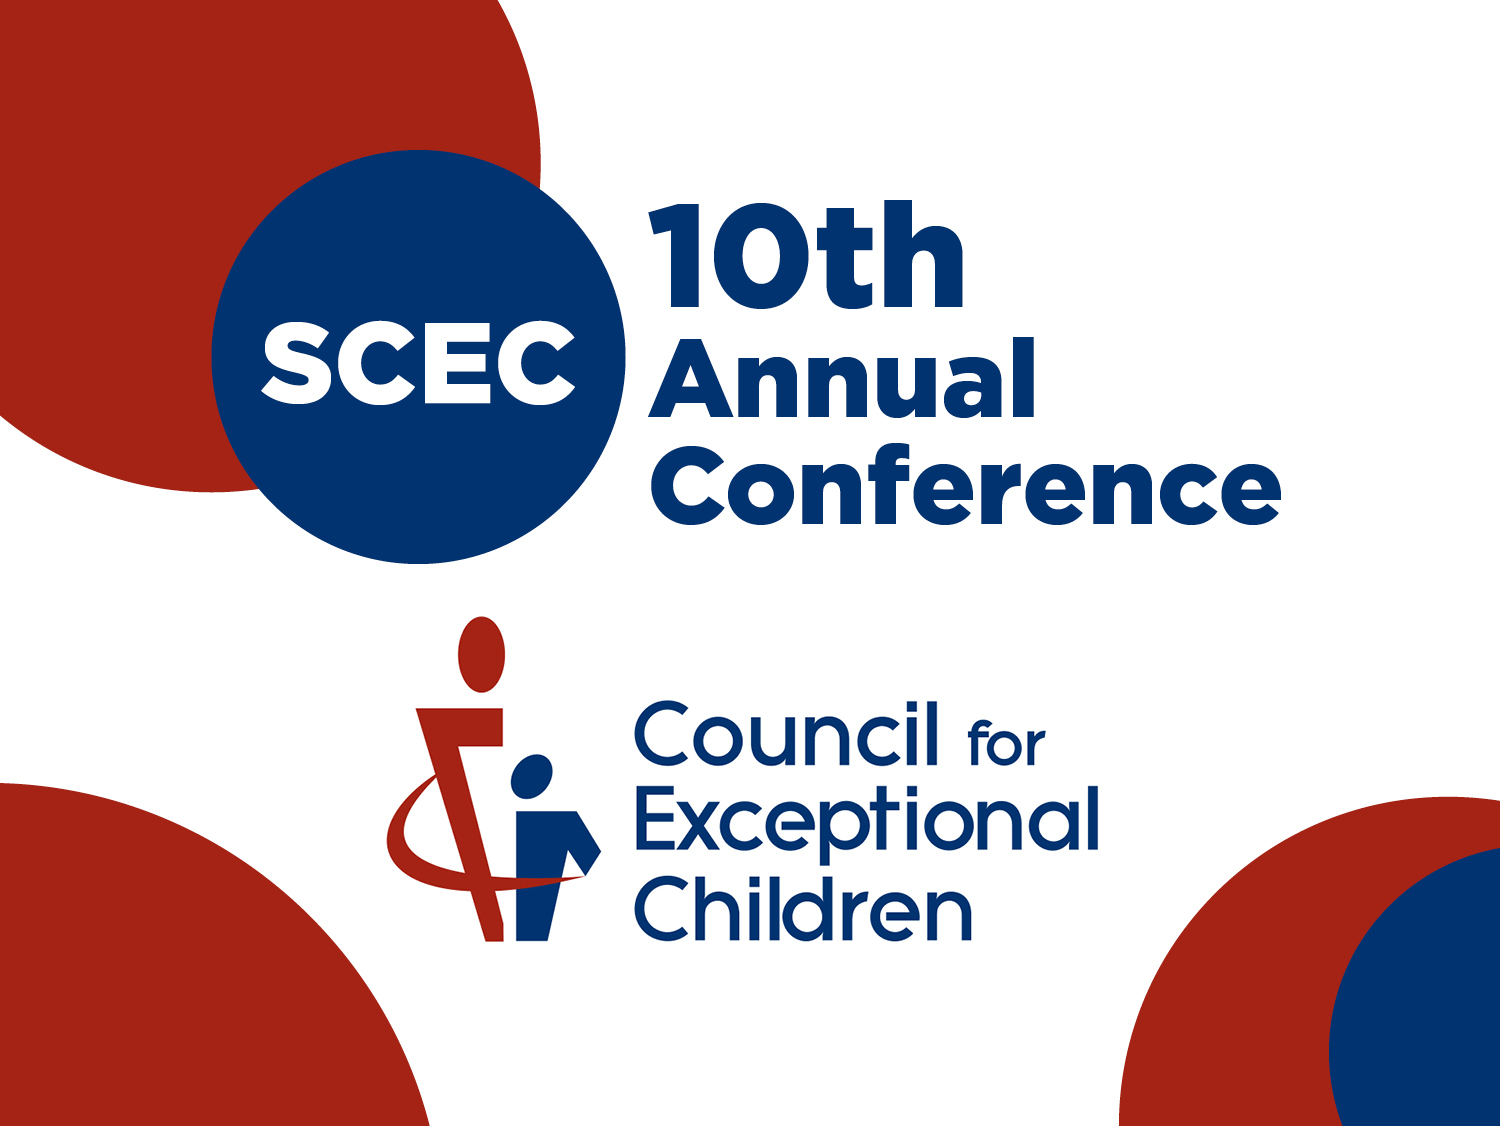 MU College of Education SCEC 10th Annual Conference, Student Council for Exceptional Children